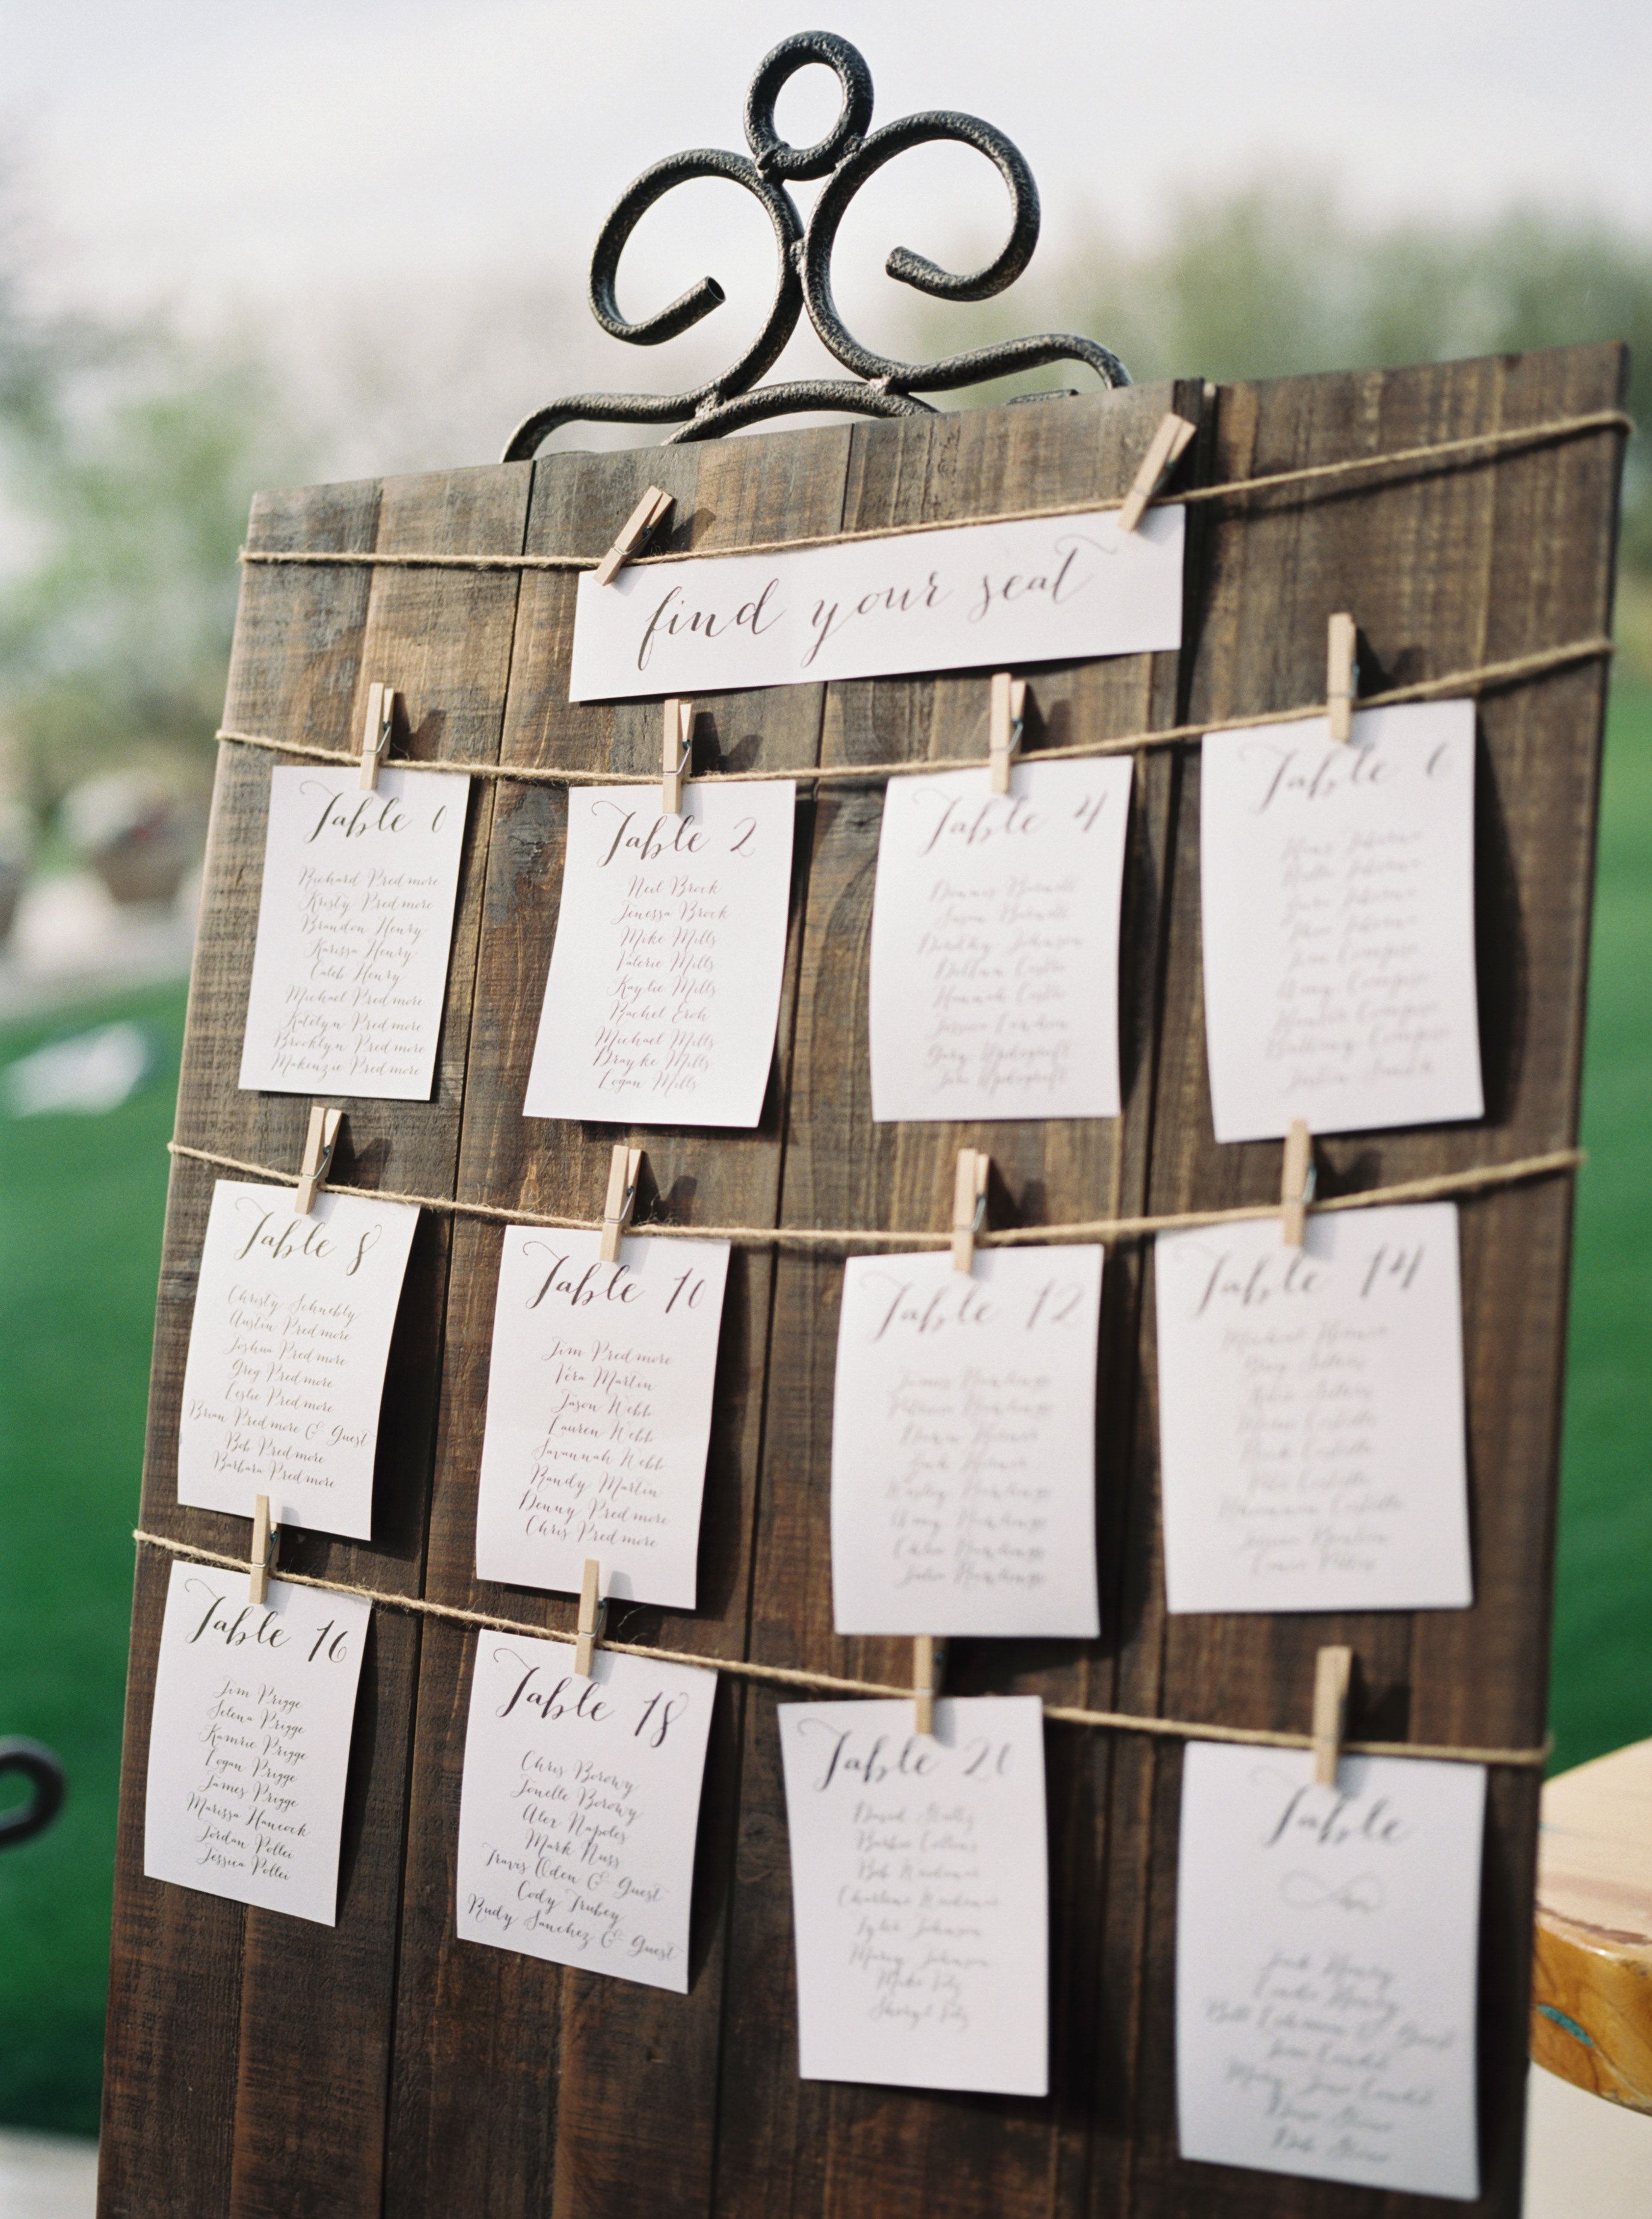 Trilogy at vistancia wedding  wooden guest seating chart with calligraphy writing on paper strung also best charts images in table rh pinterest